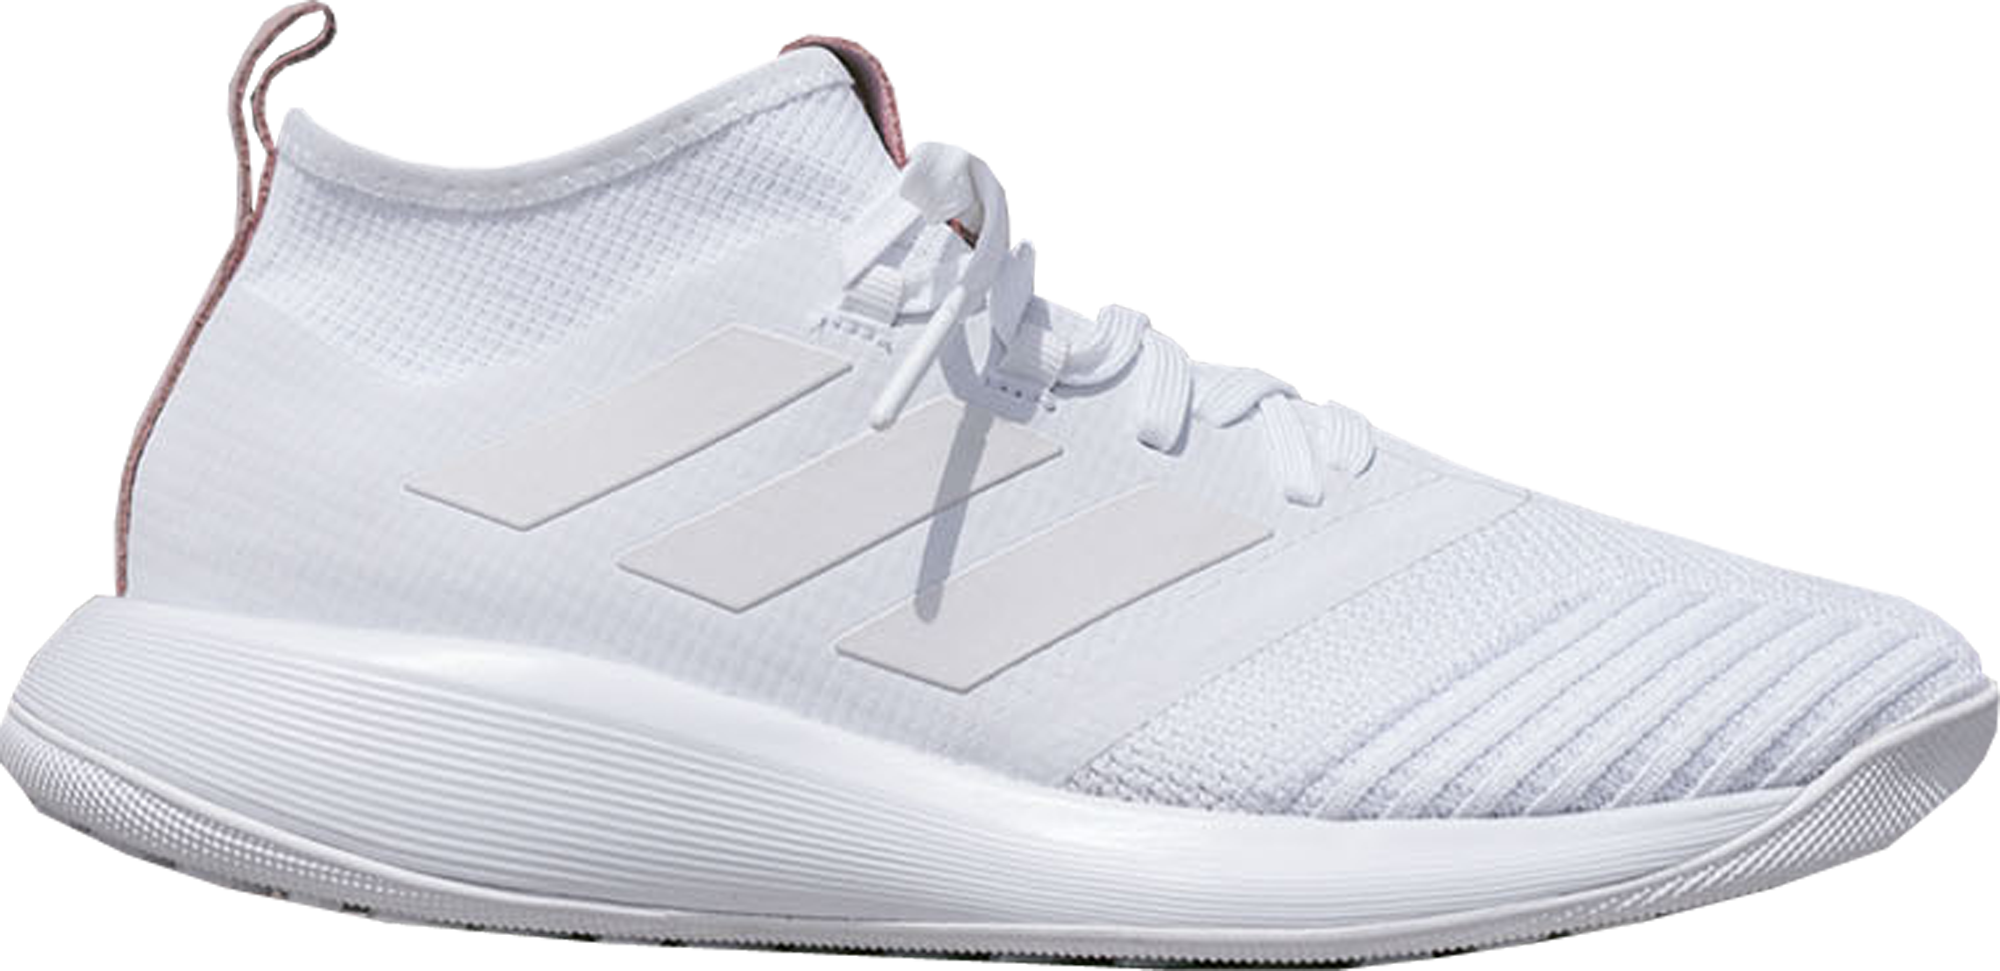 outlet store a34de 3d042 Kith x adidas ACE Tango 17.1 Purecontrol Turf Trainer ...